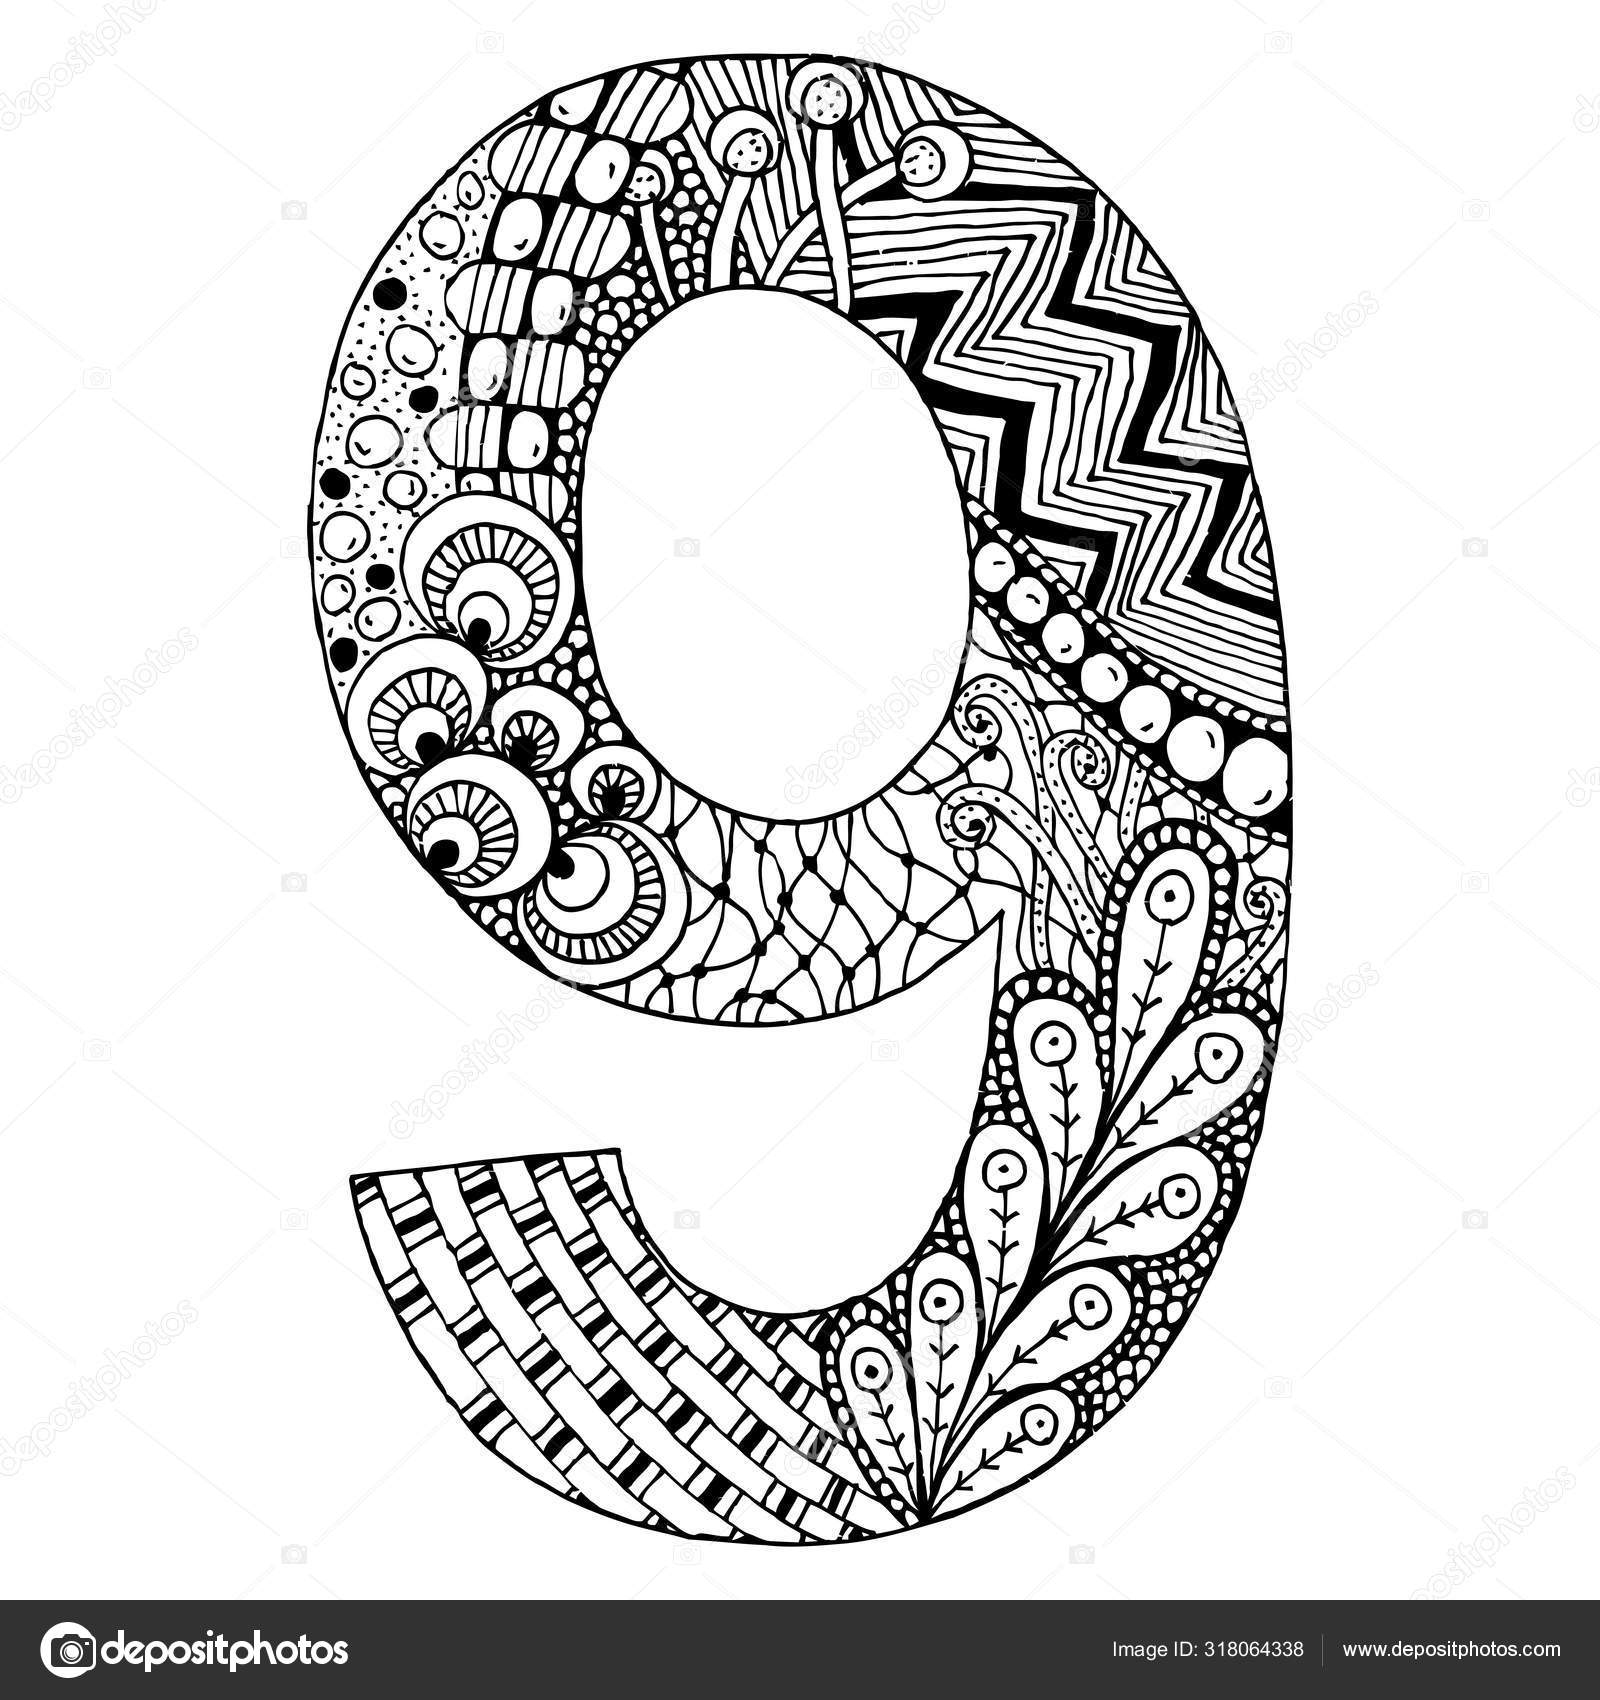 Alphabet Zentangle Coloring Pages - Bowstomatch